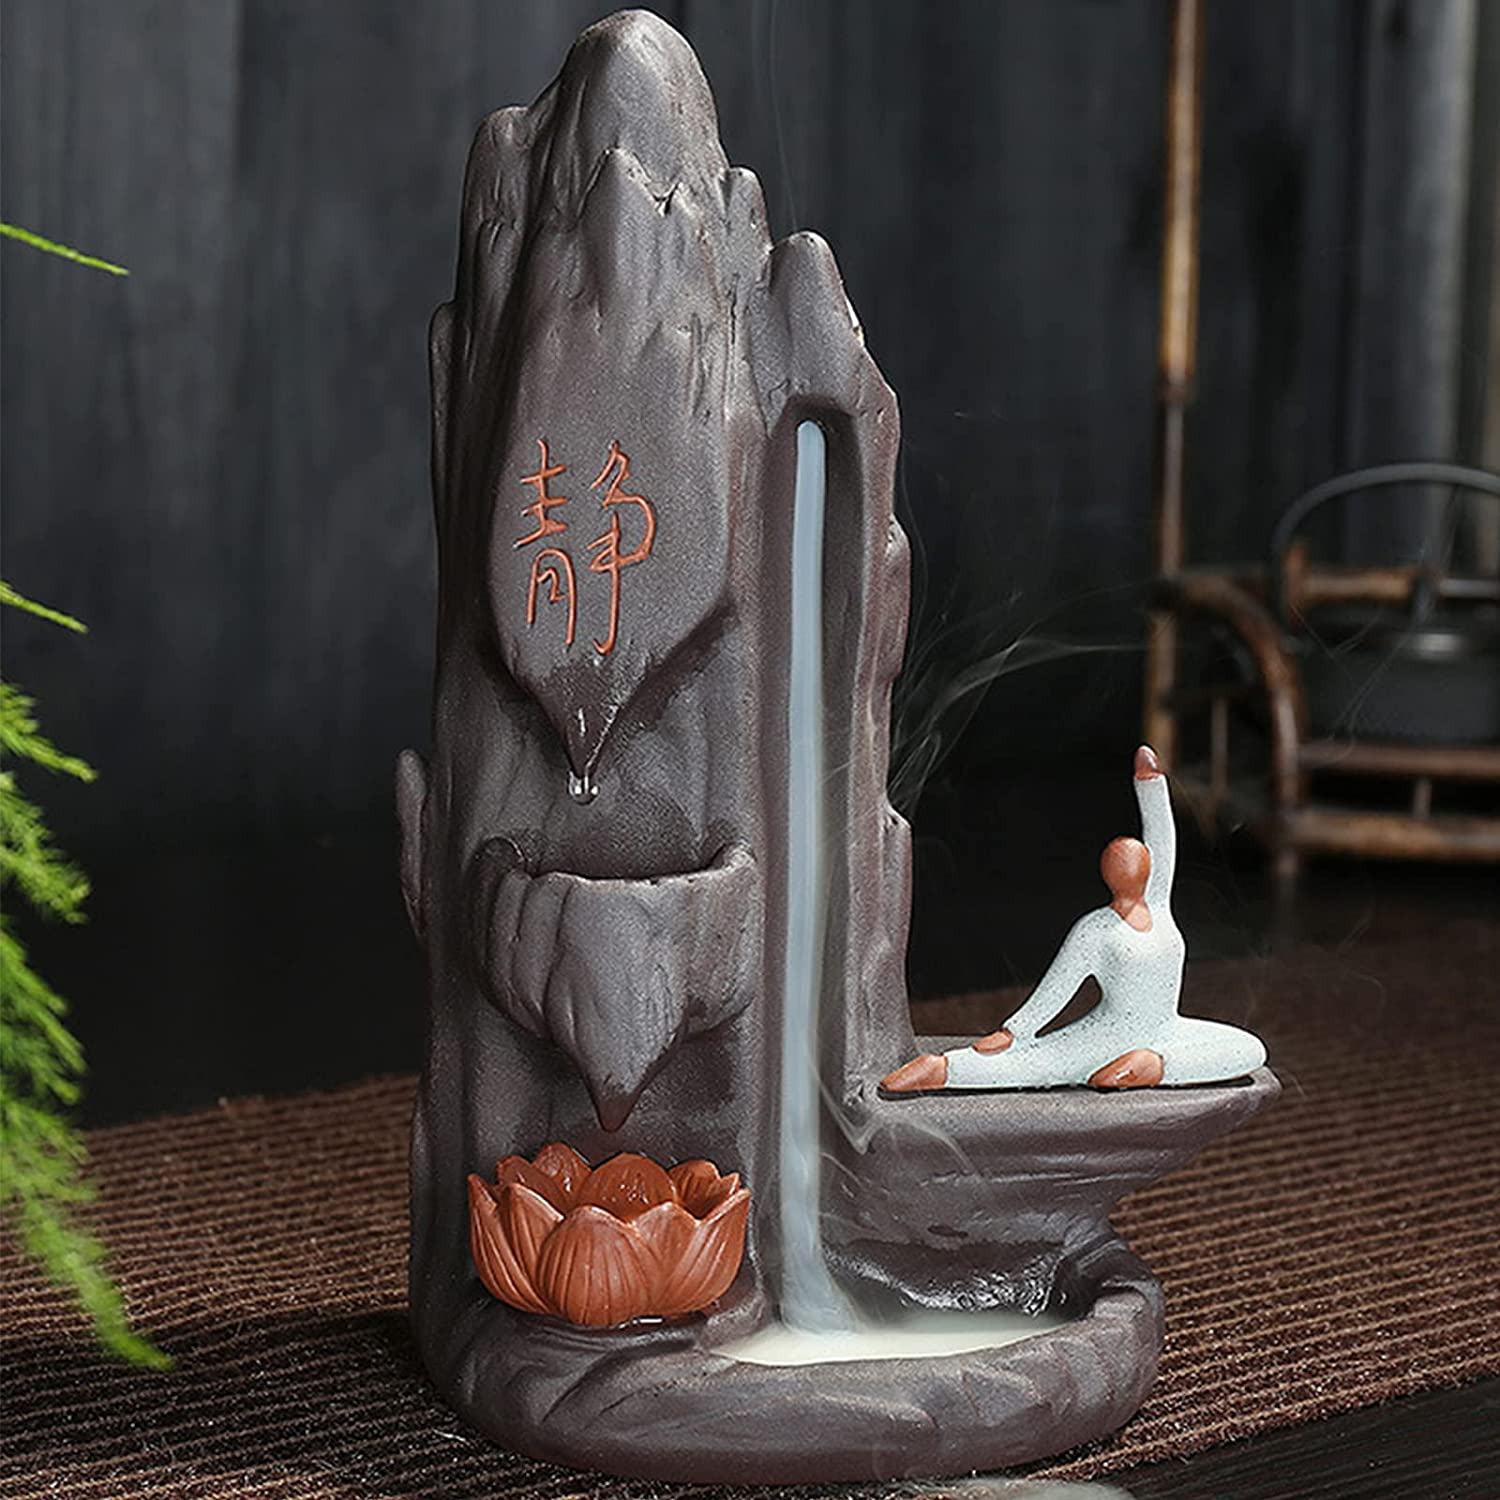 XDYFF Incense Latest item Burner Holder Waterfall Ceramic Woman Statue Cheap mail order specialty store Yoga